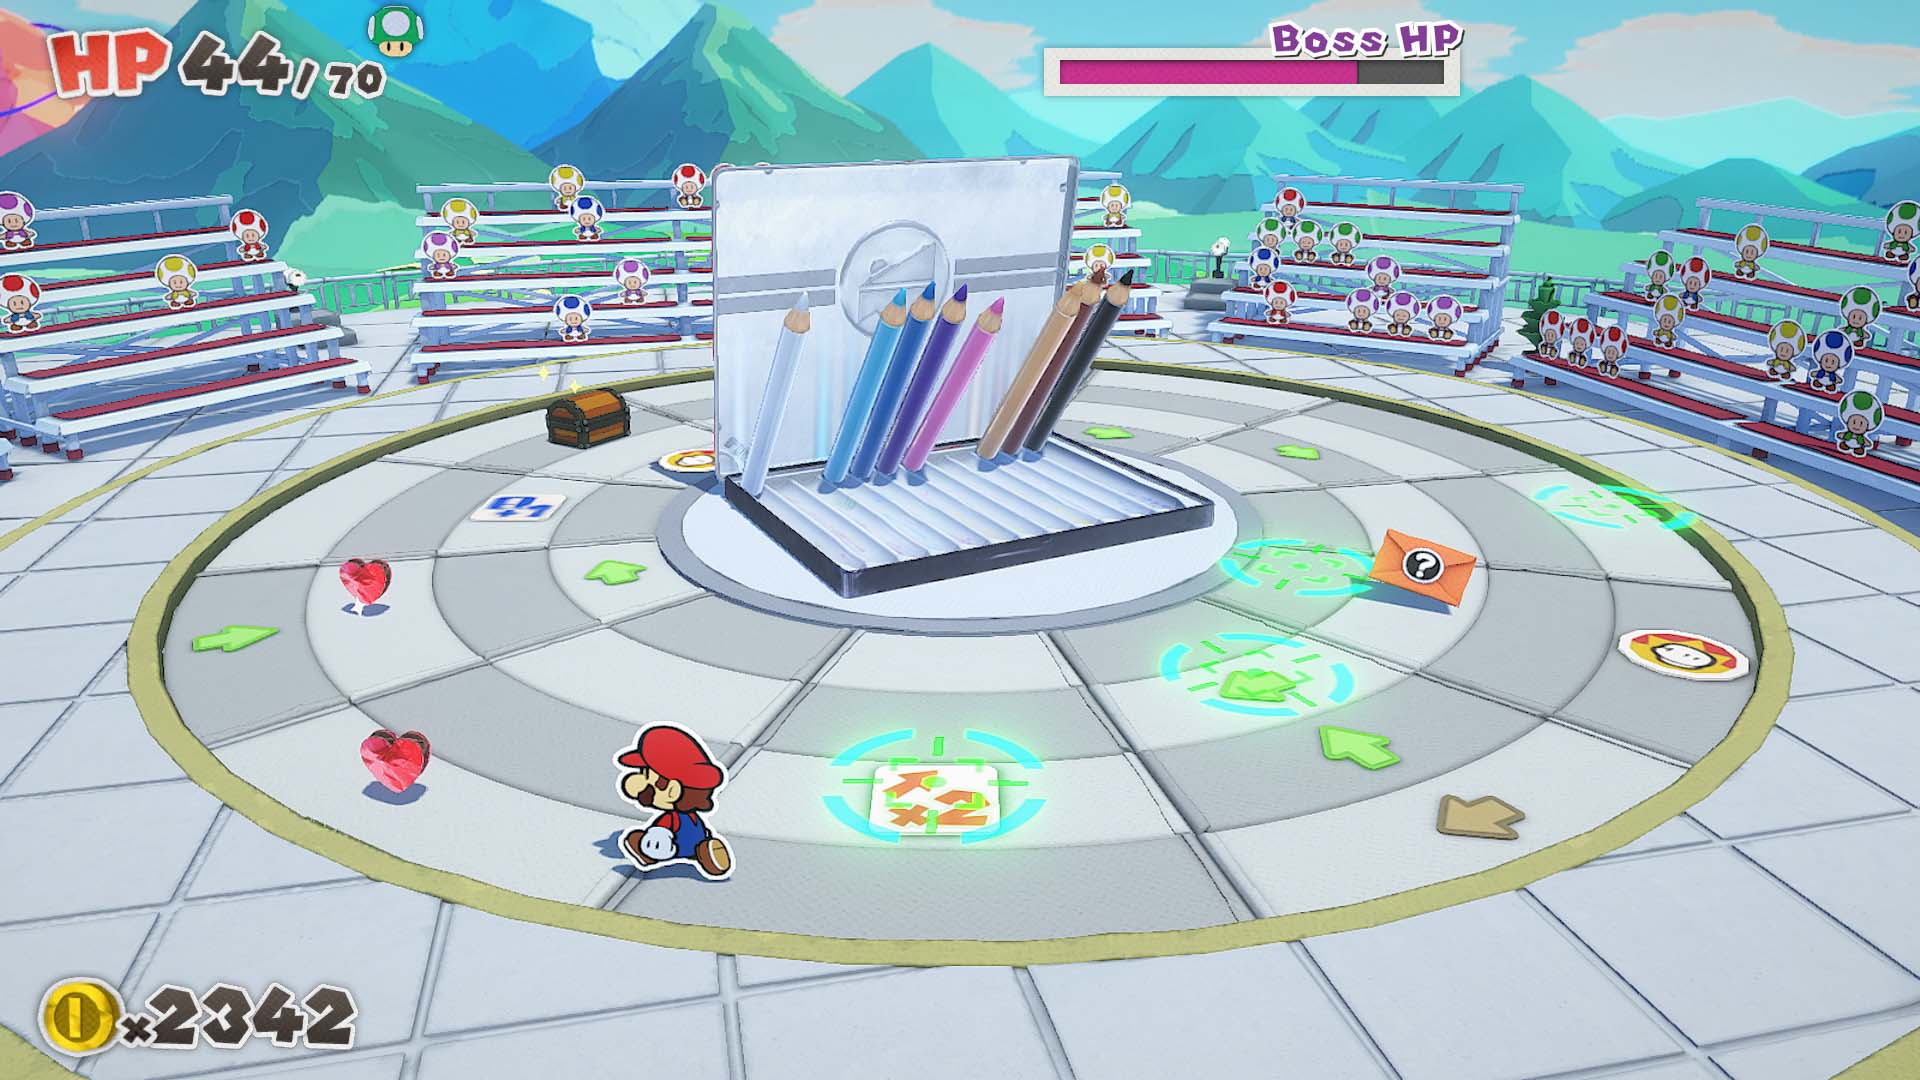 A typical combat setup where Mario is facing off against a colored pencil boss.